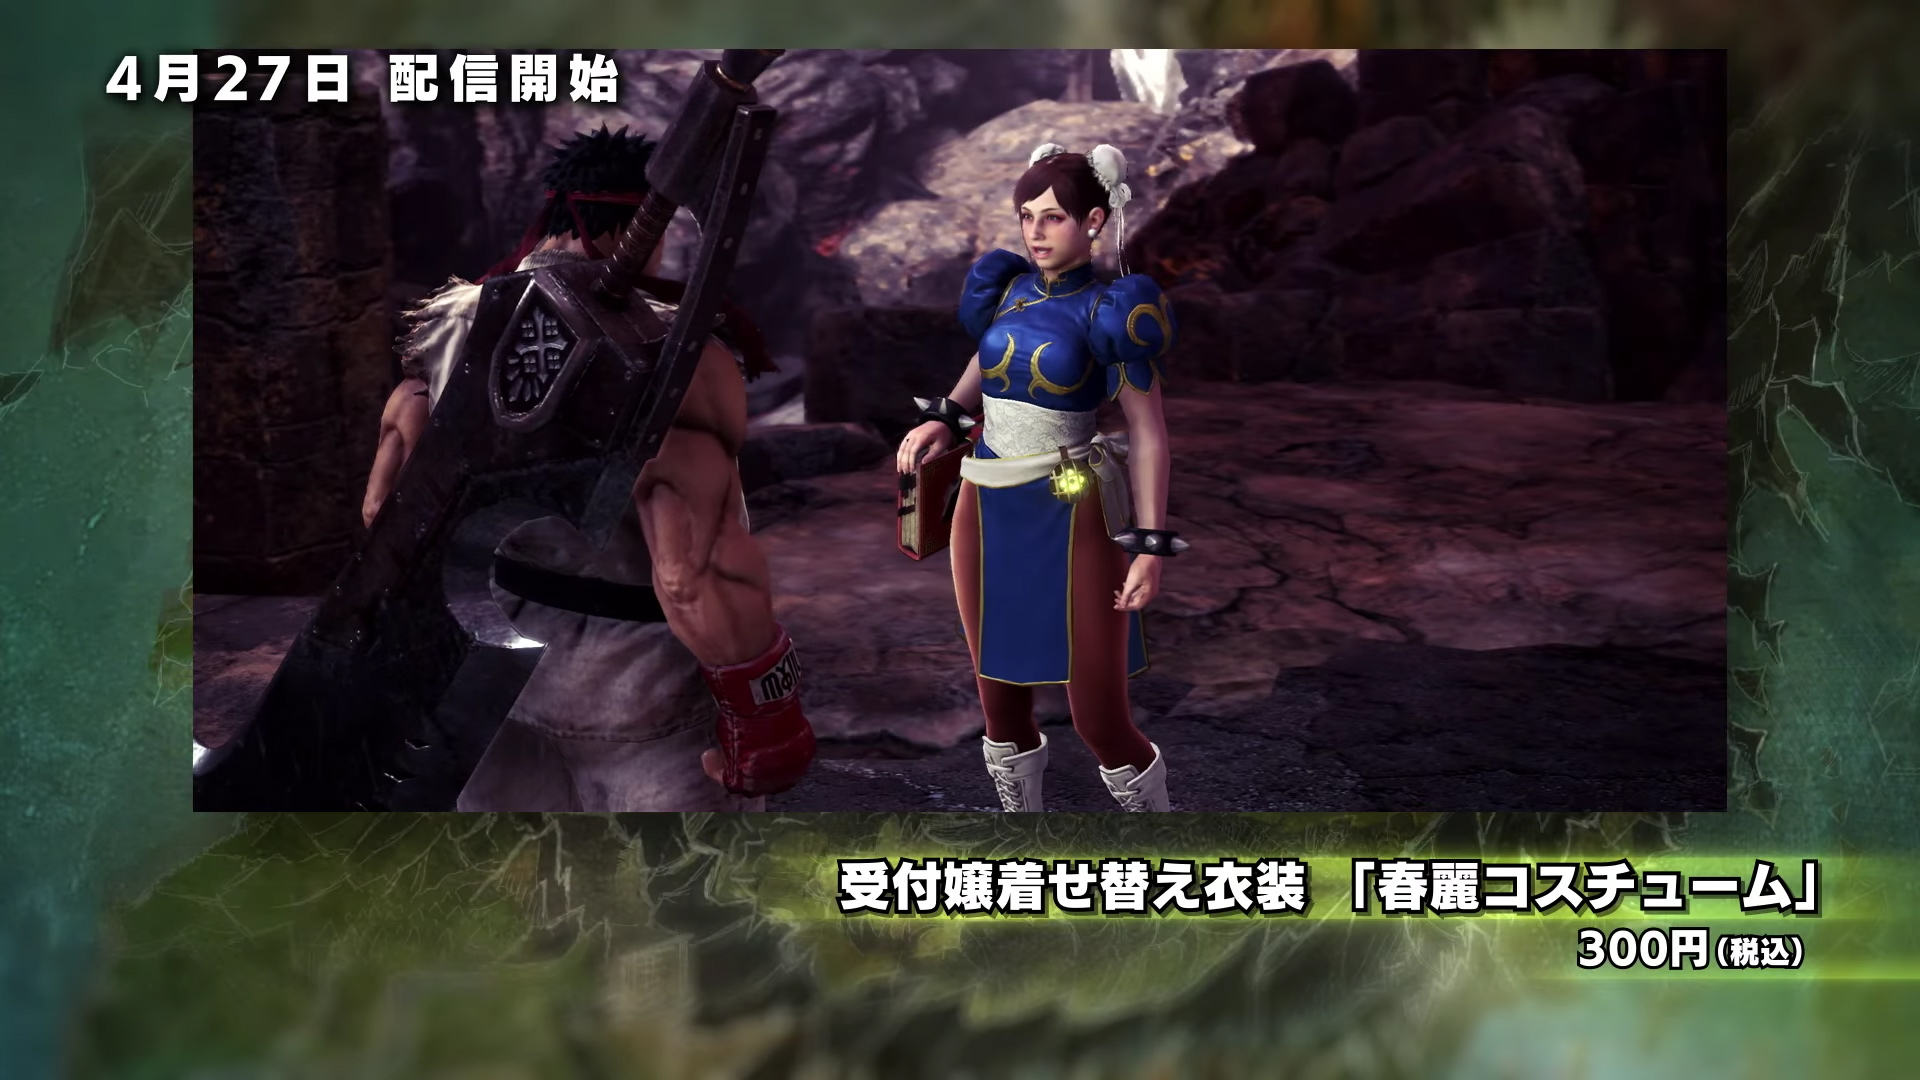 Check out this Chun-Li outfit for the Handler in Monster Hunter World